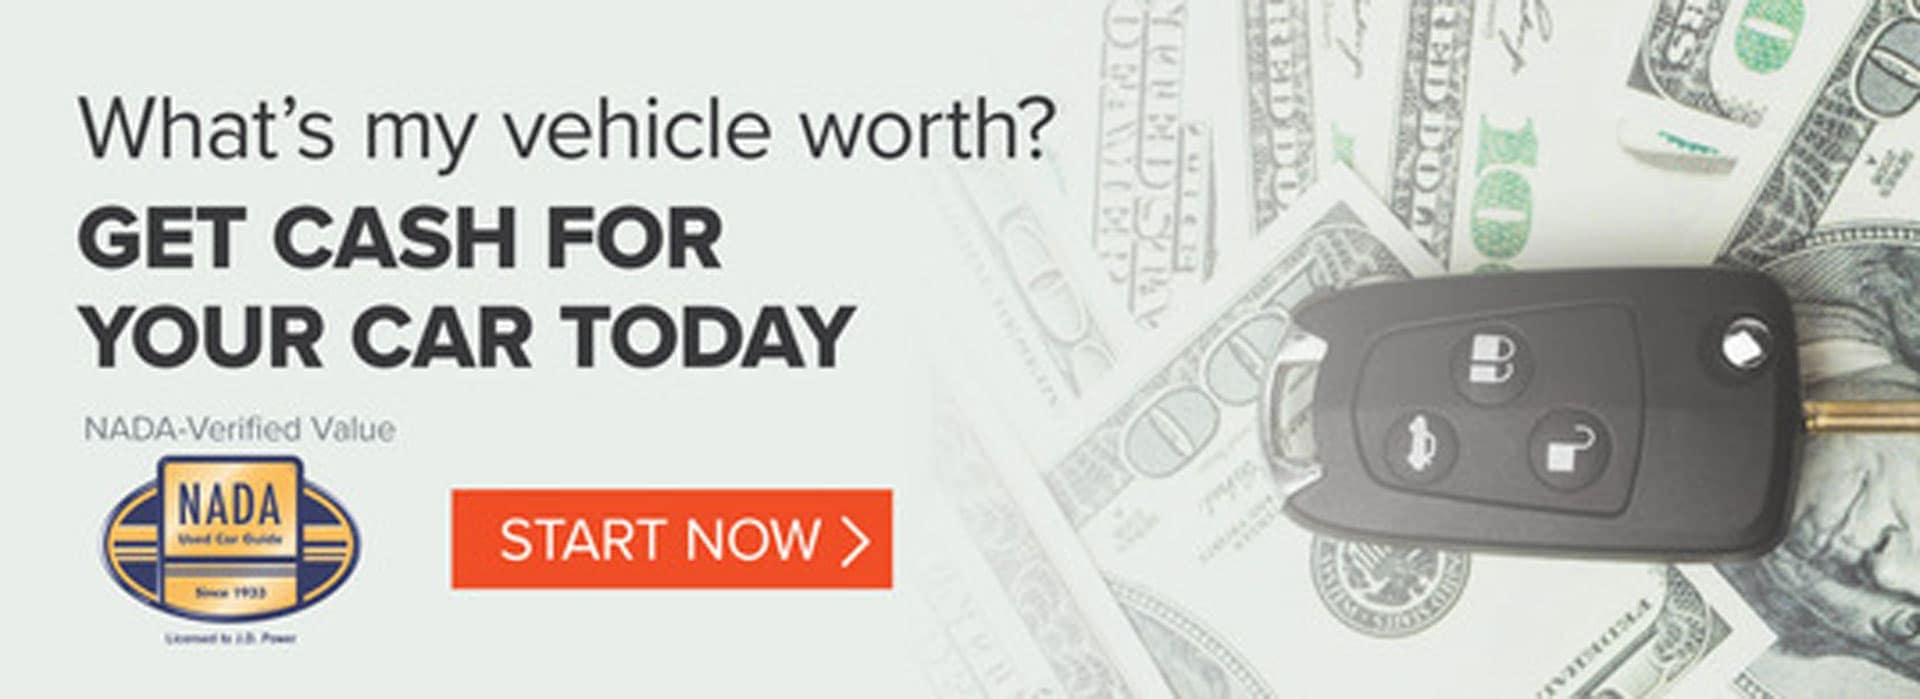 What's my vehicle worth? Get cash for your car today.